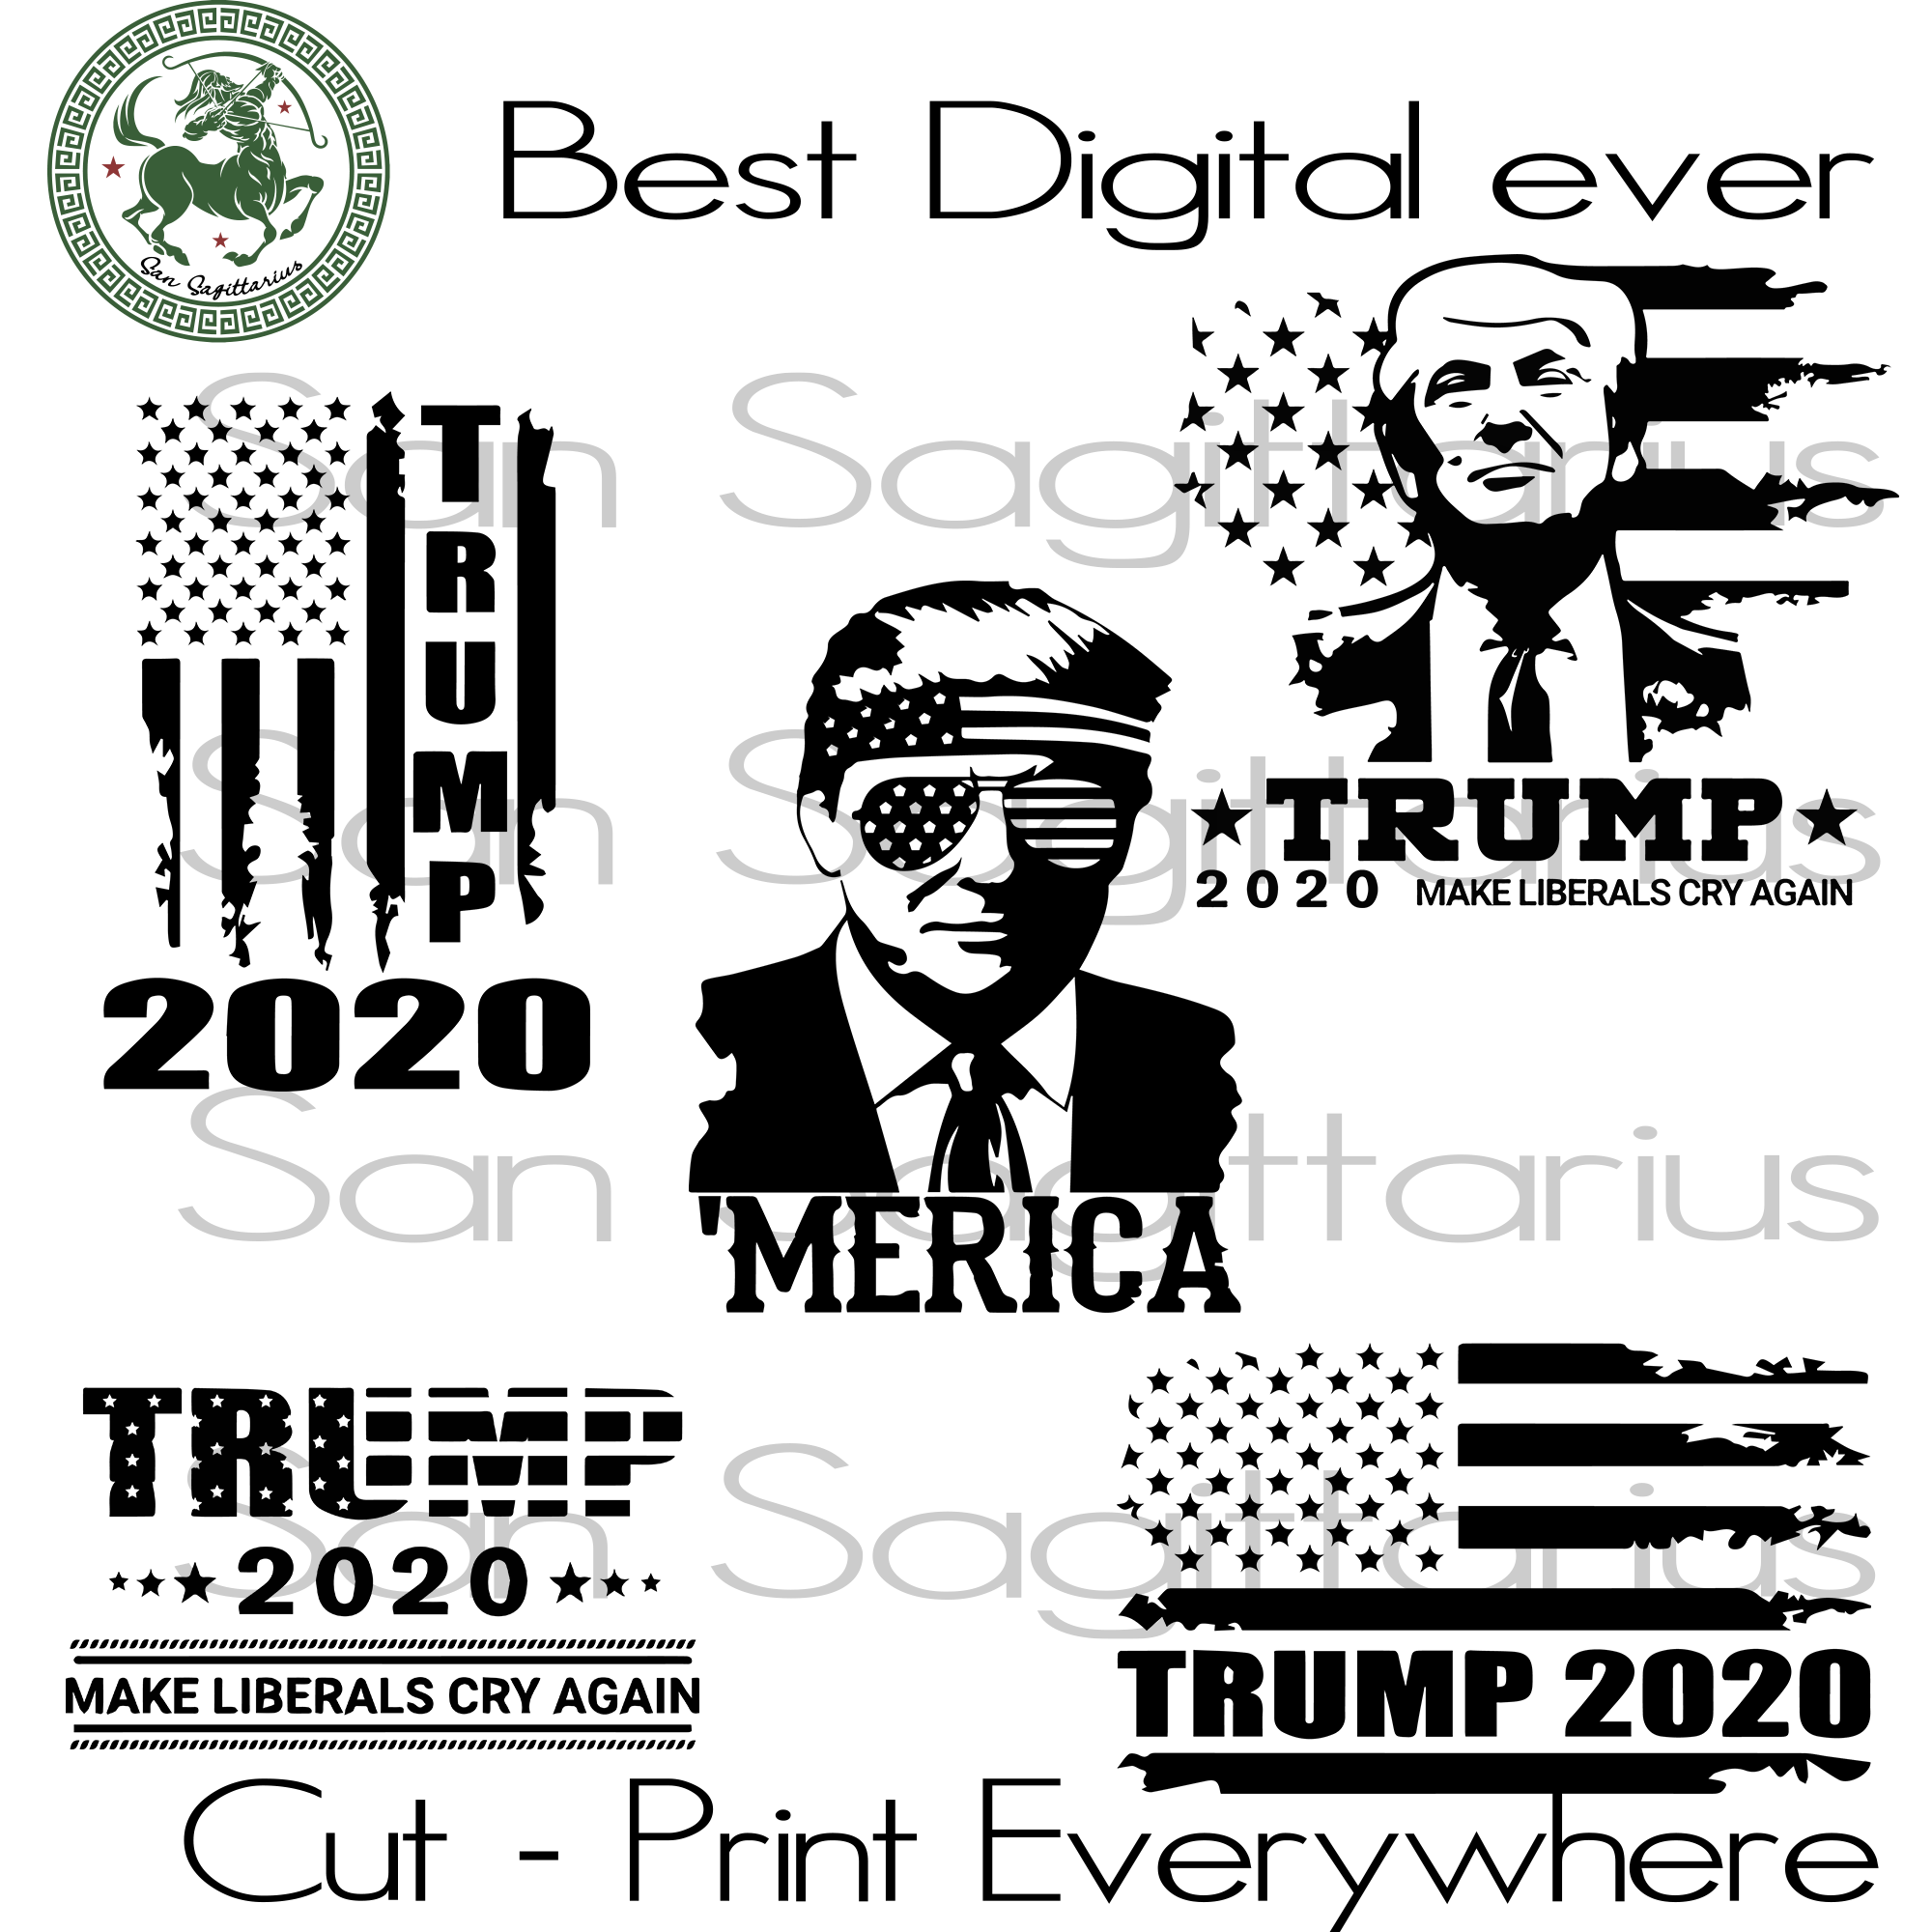 Trump 2020 Make Liberals Cry Again, Liberals Cry Again, 2020 Svg, 2020, Trump Svg, Trump, American President, Funny Saying Svg, Liberals Svg, Trump 2020, Make America Great, Trump Supporter C